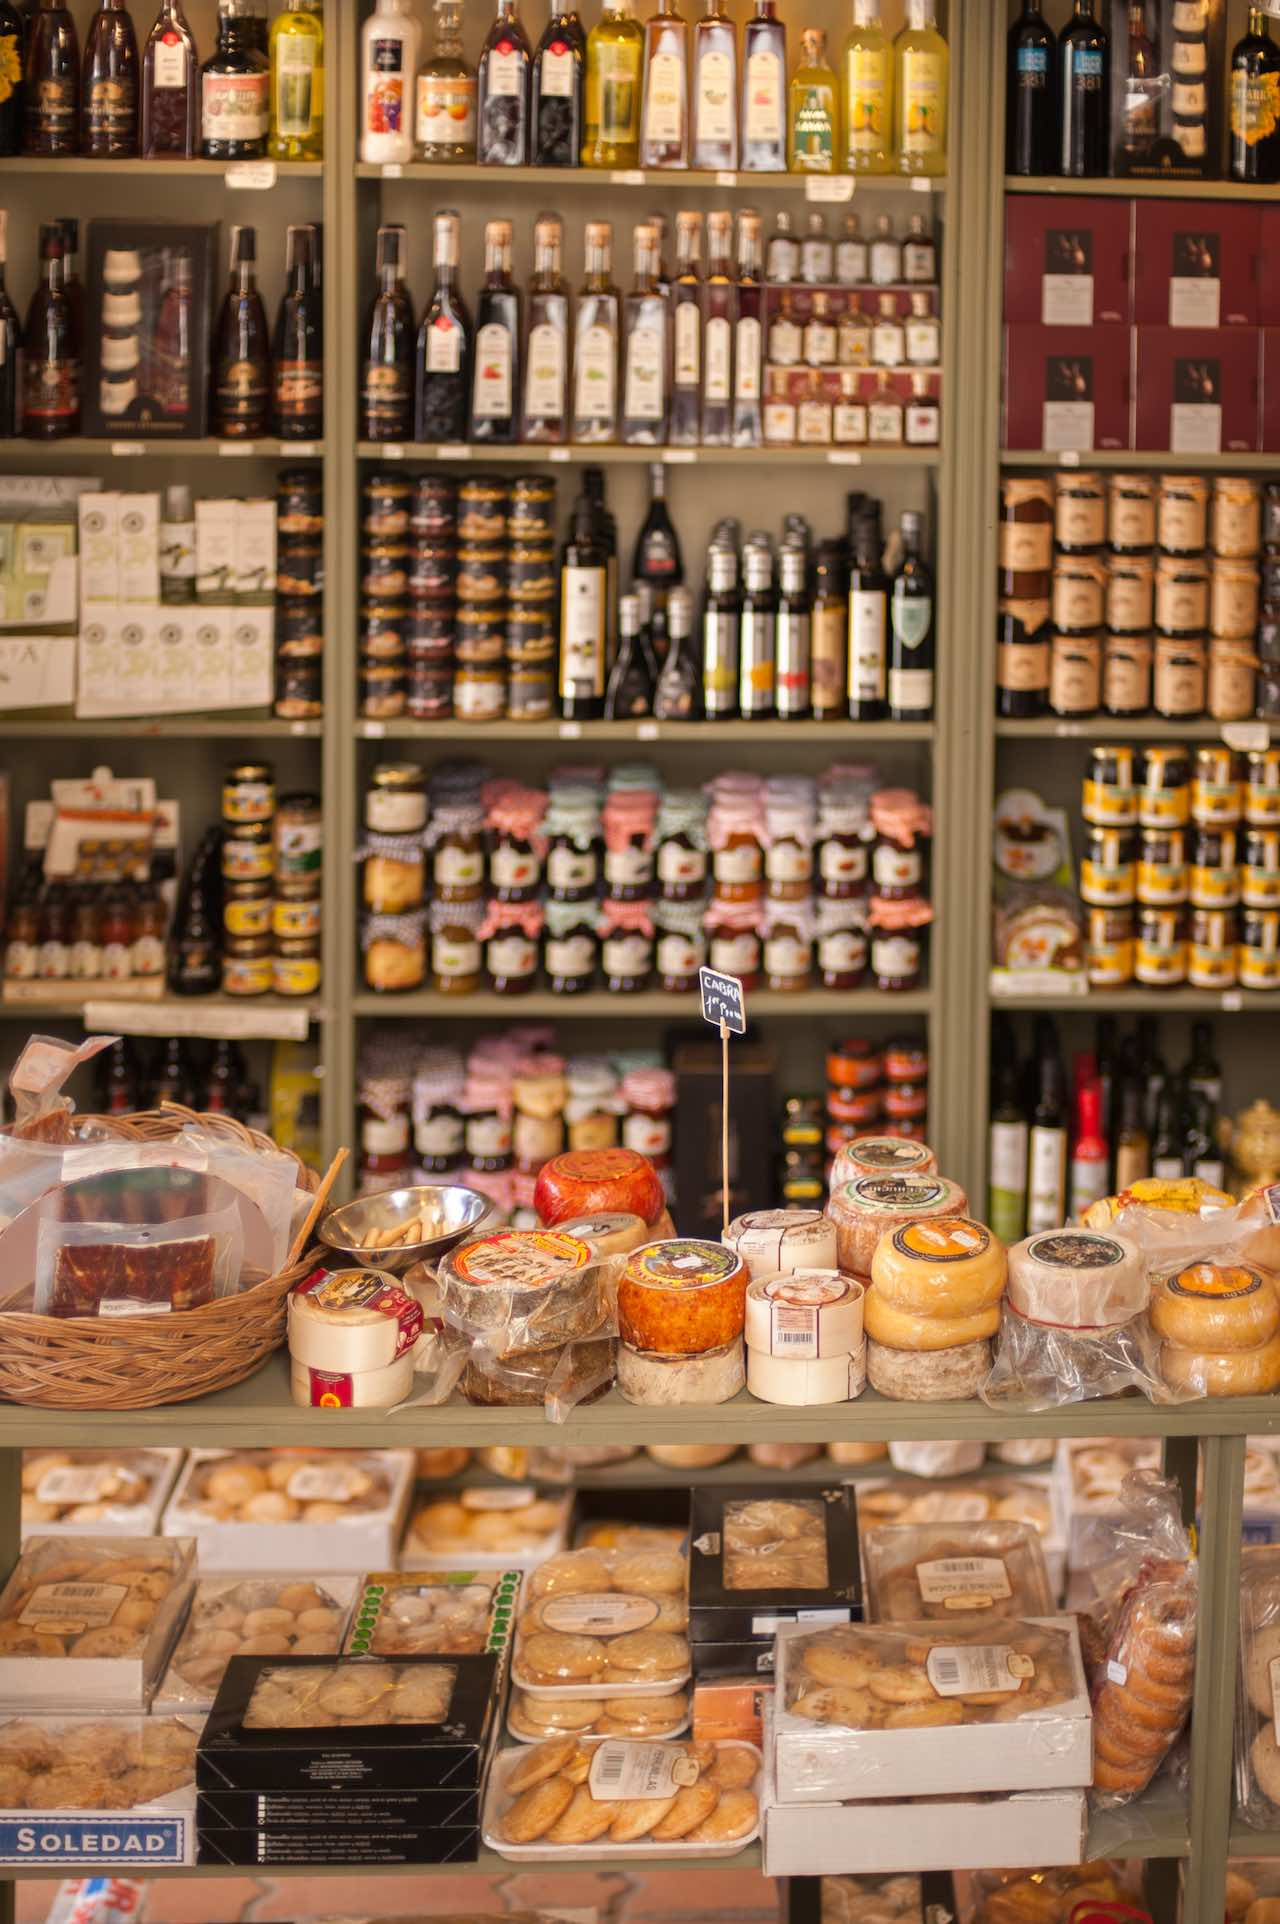 Caceres Spanish Capital of Gastronomy